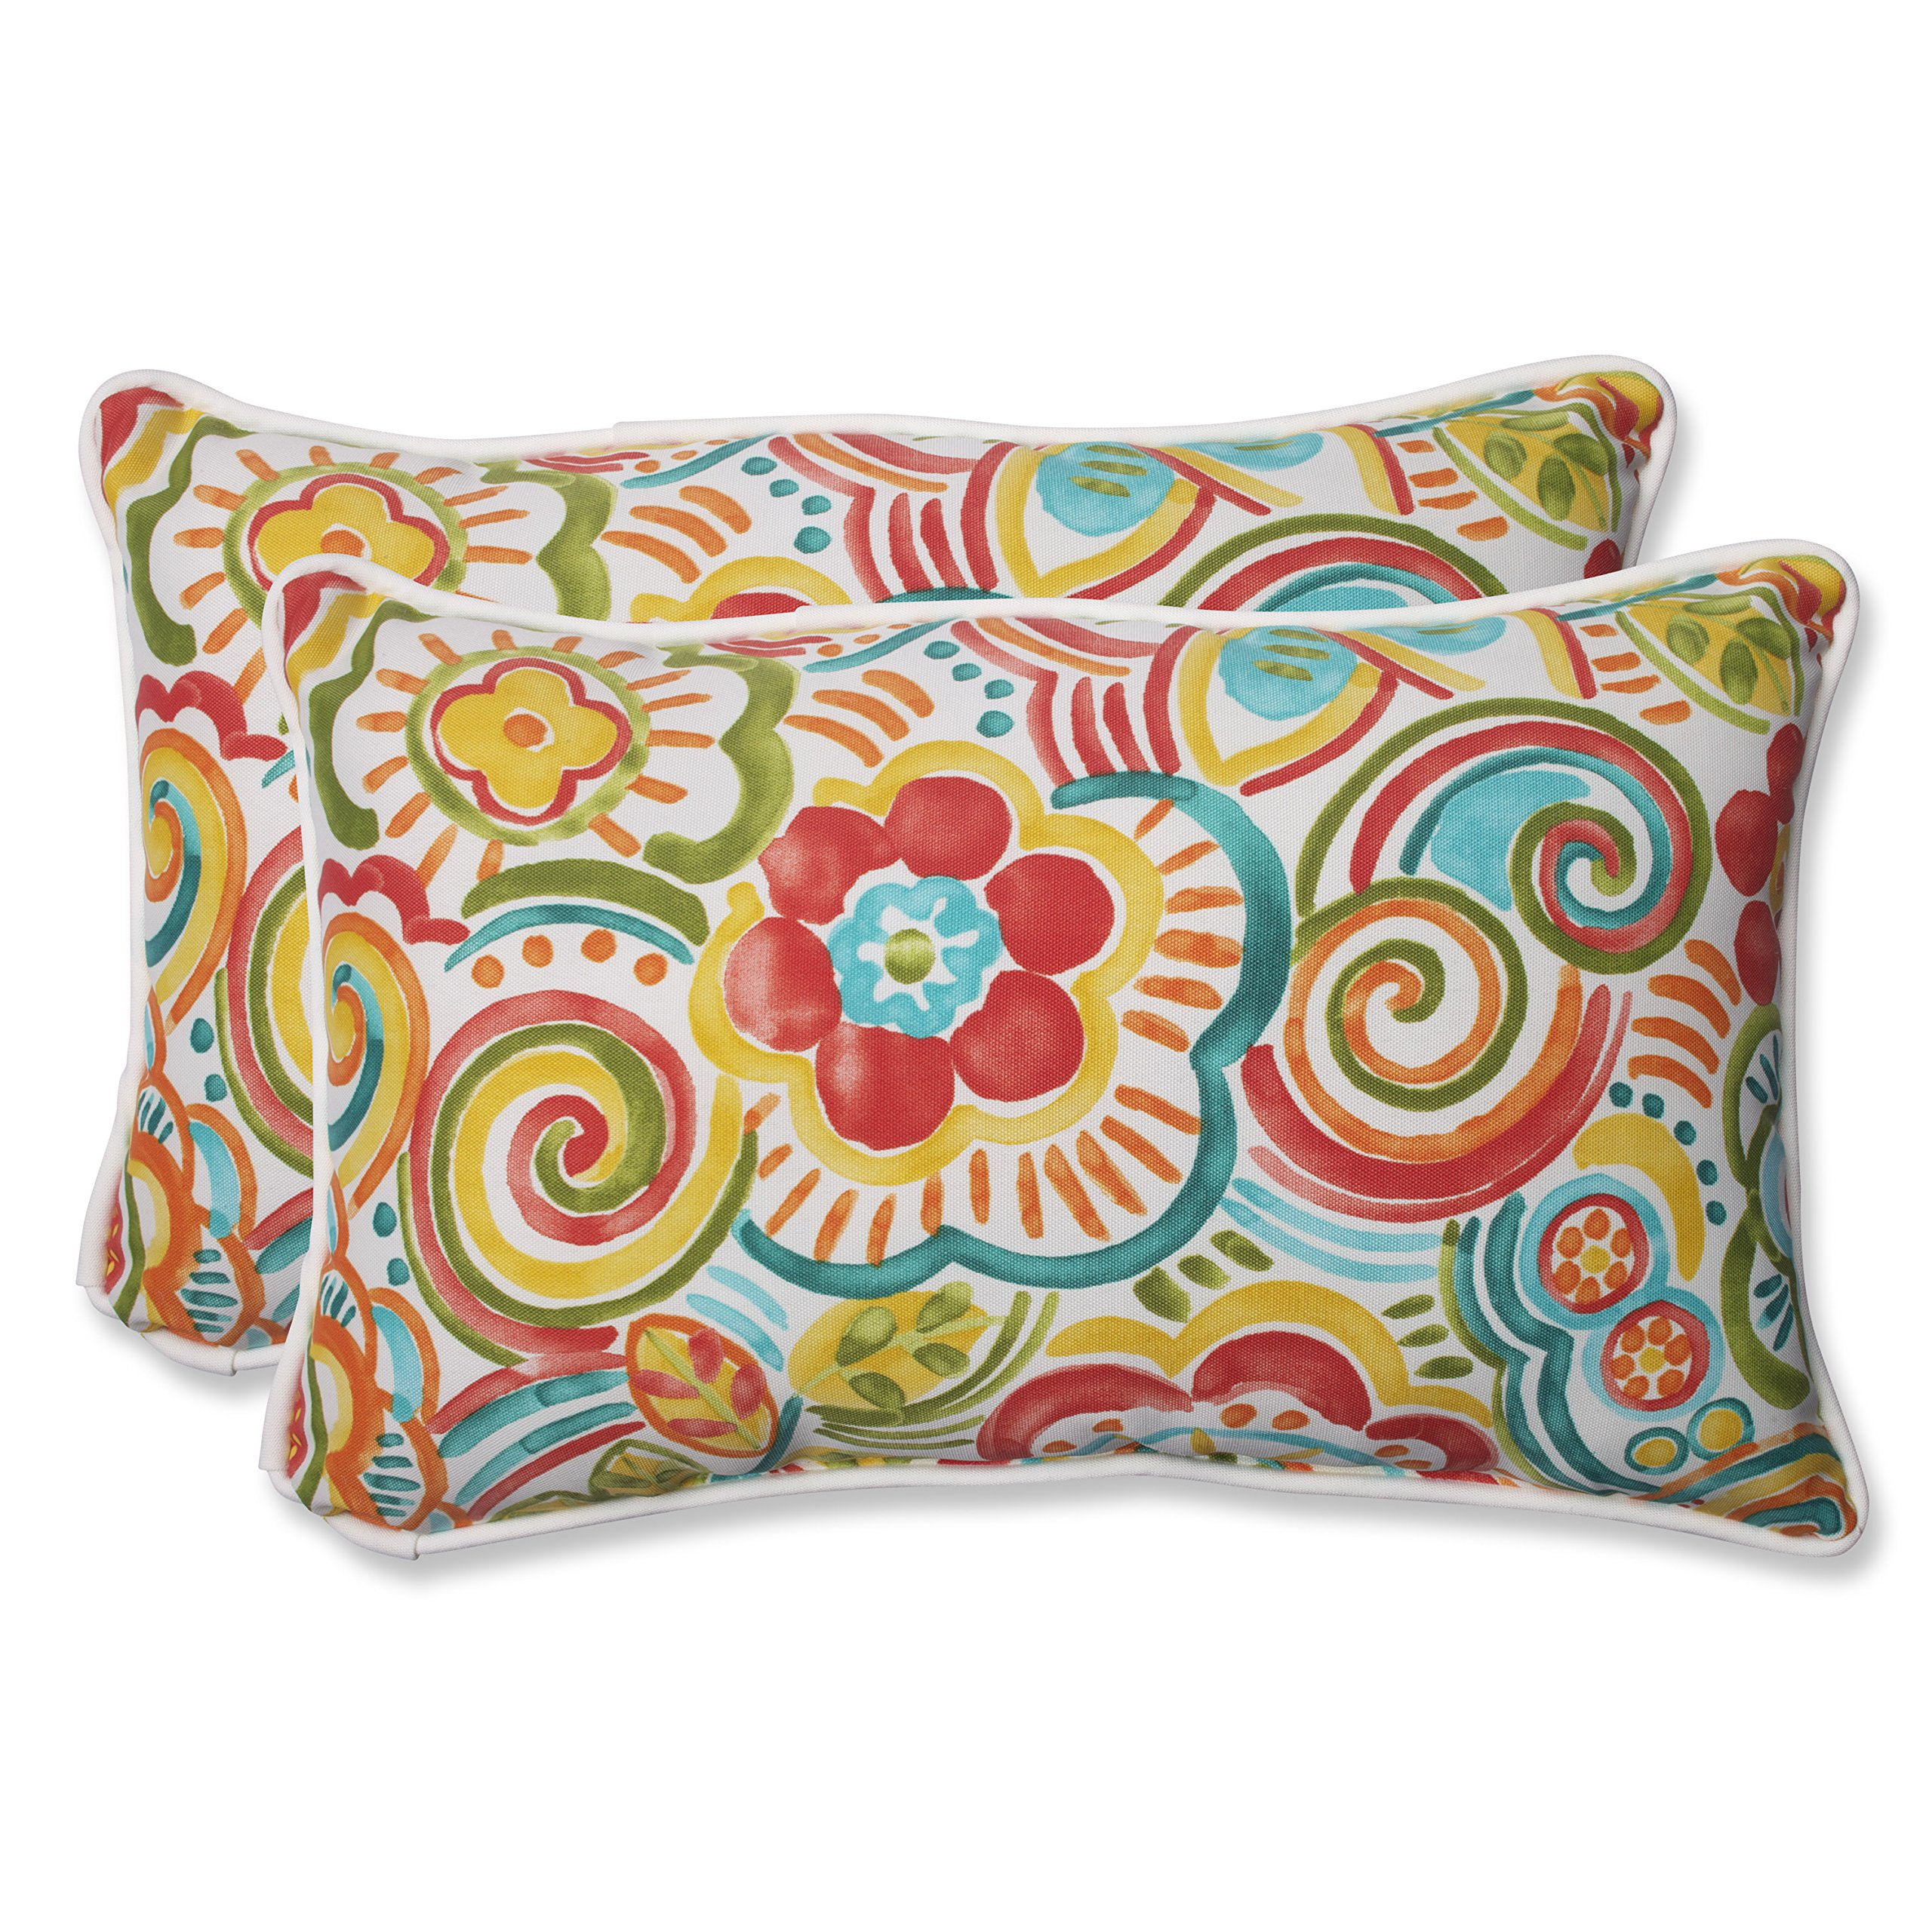 Pillow Perfect 569062 Outdoor Bronwood Carnival Rectangular Throw Pillow, 11.5'' x 18.5'', Multicolored